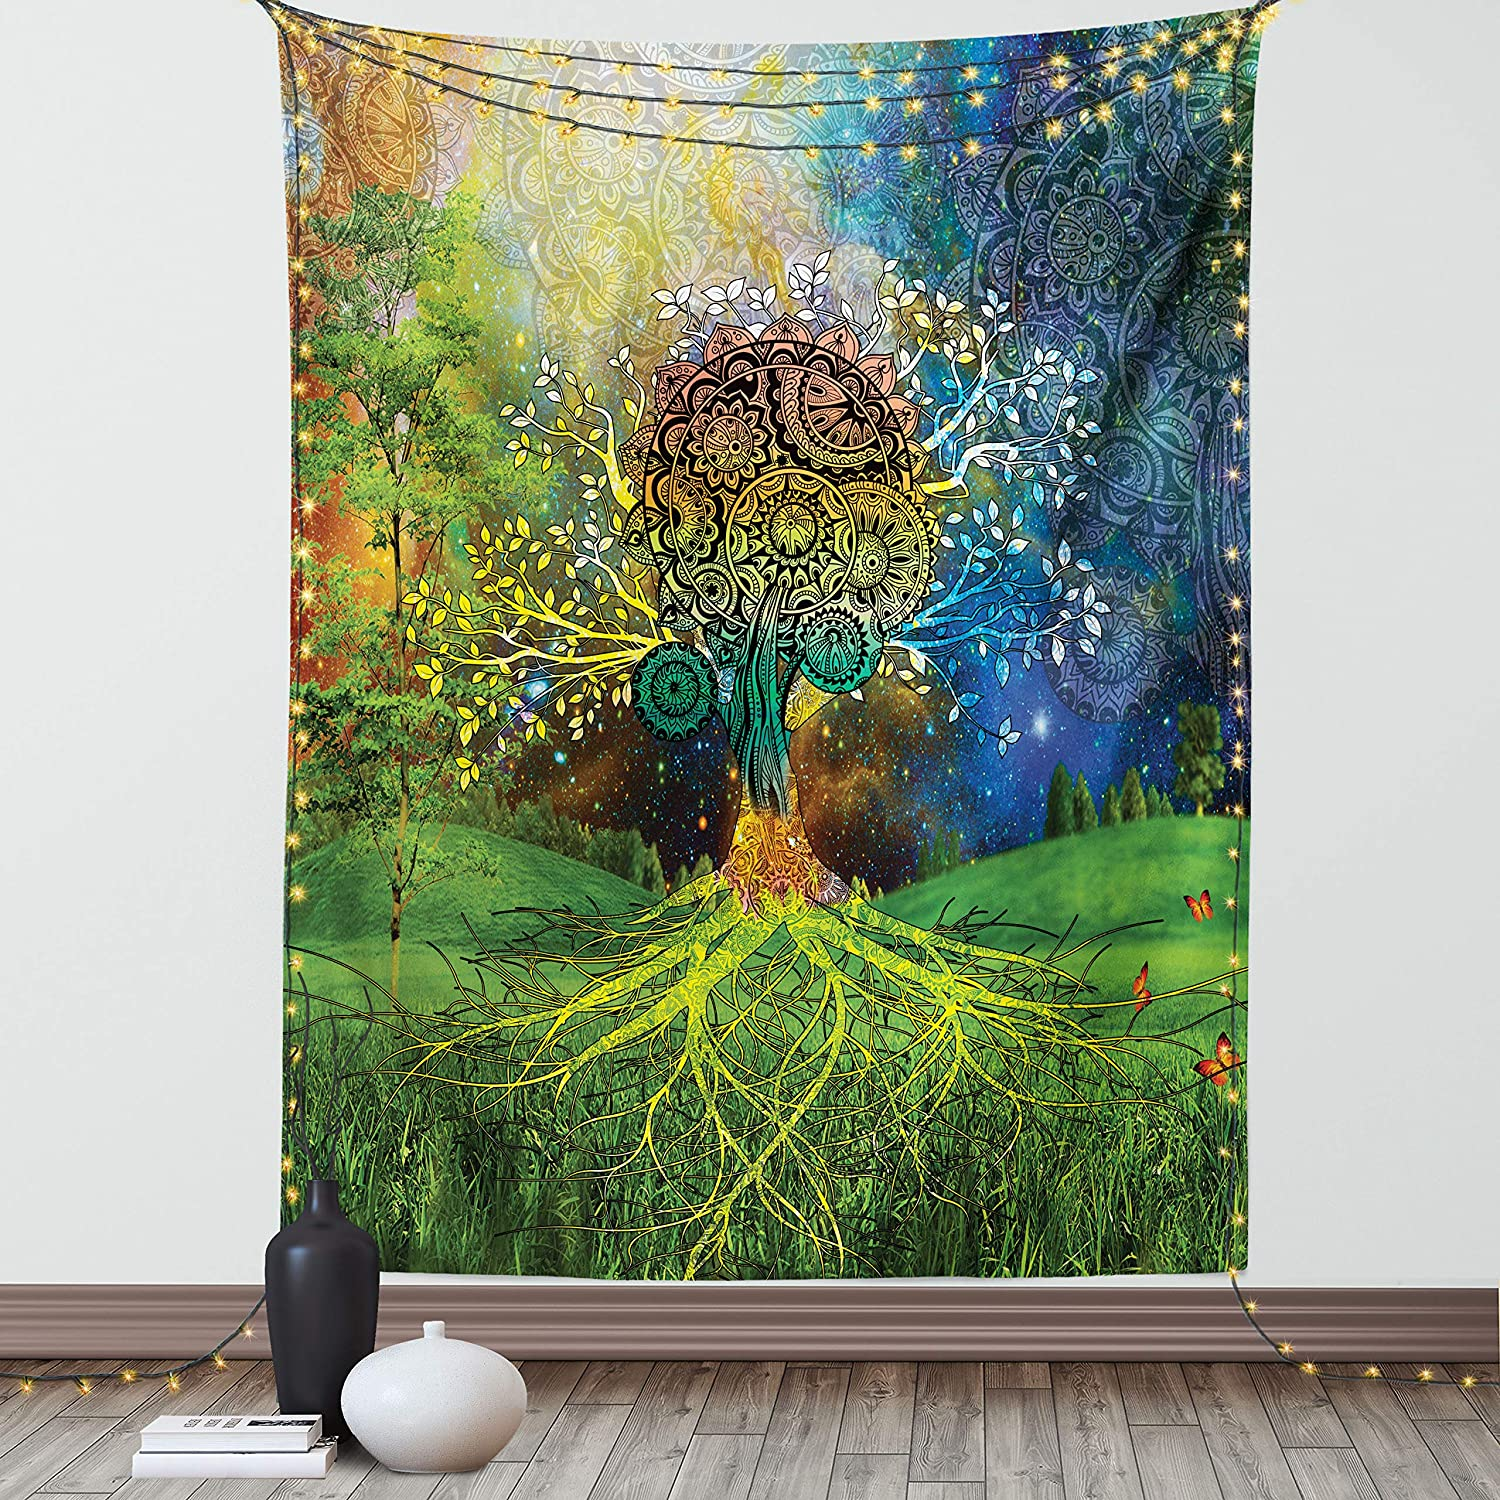 Ambesonne Ethnic Tapestry, Bohemian Tree of Life in The Valley Spiral Branches Balance in The Mother Earth Illustration Print, Wall Hanging for Bedroom Living Room Dorm Decor, 60